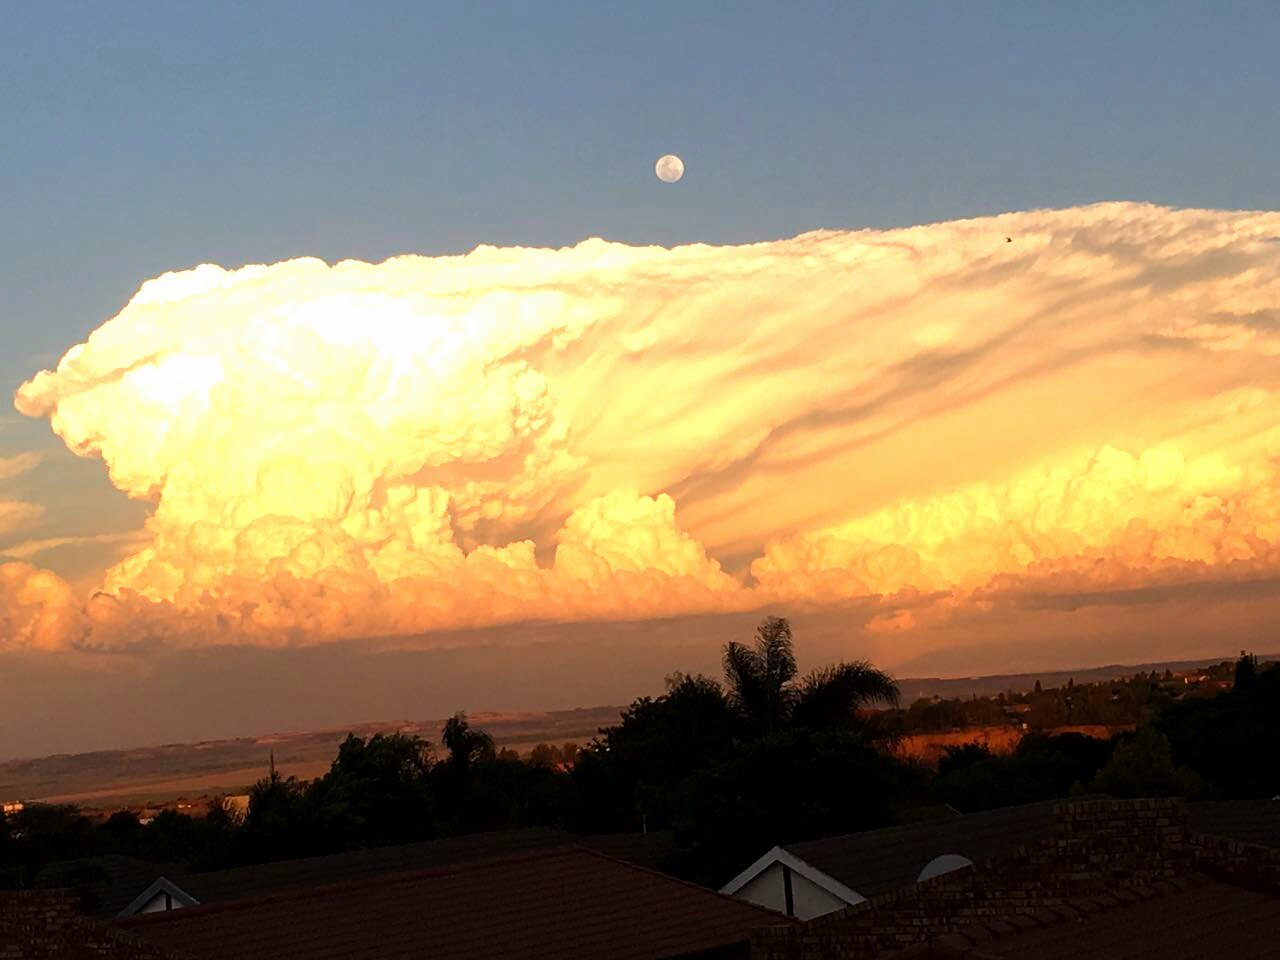 cloud, cumulonimbus, cumulonimbus cloud, cumulonimbus cloud south africa, sa cumulonimbus cloud Mpumalanga